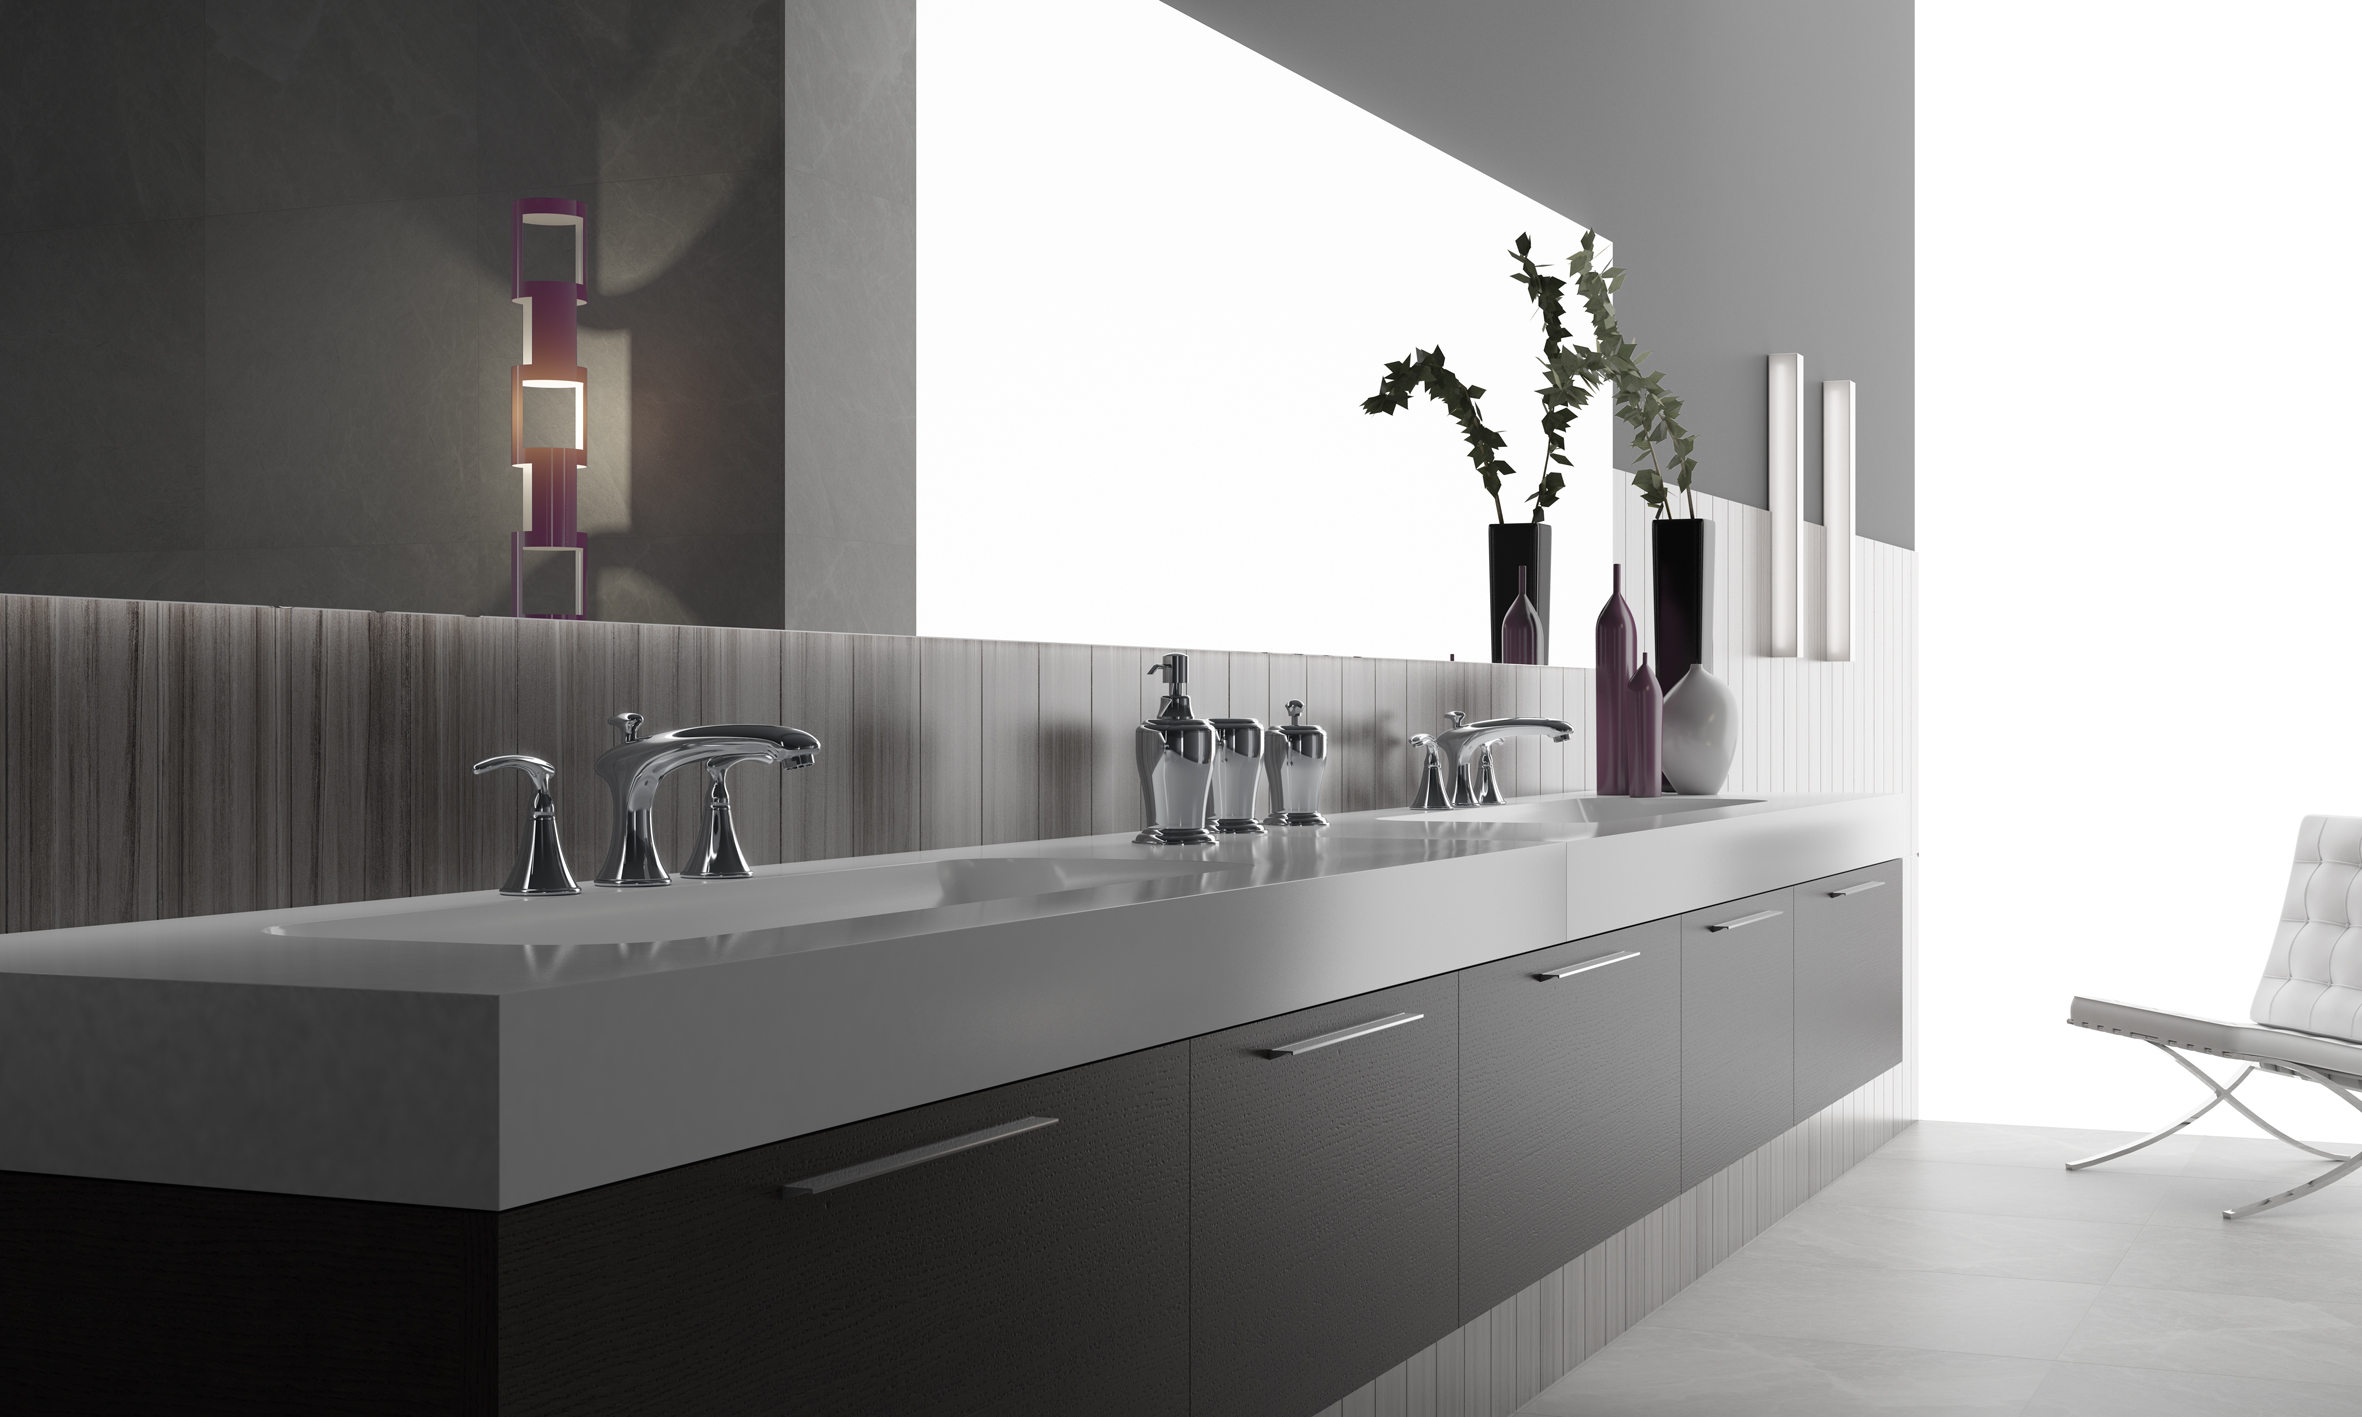 Etonnant Luxury Bathroom Accessories With Aral Series (2)